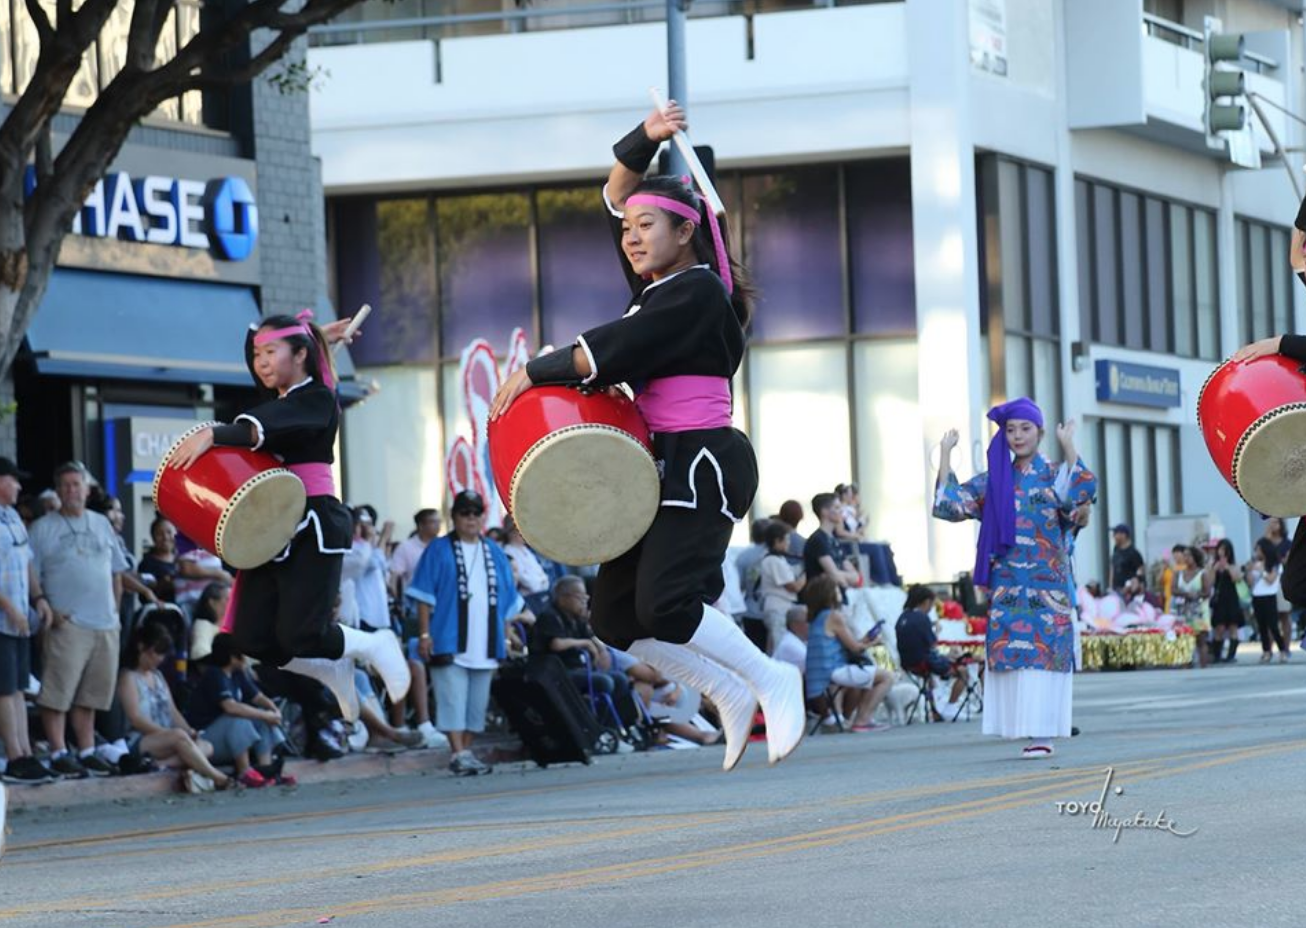 A group of traditional Japanese drummers perform at the Nisei festival.